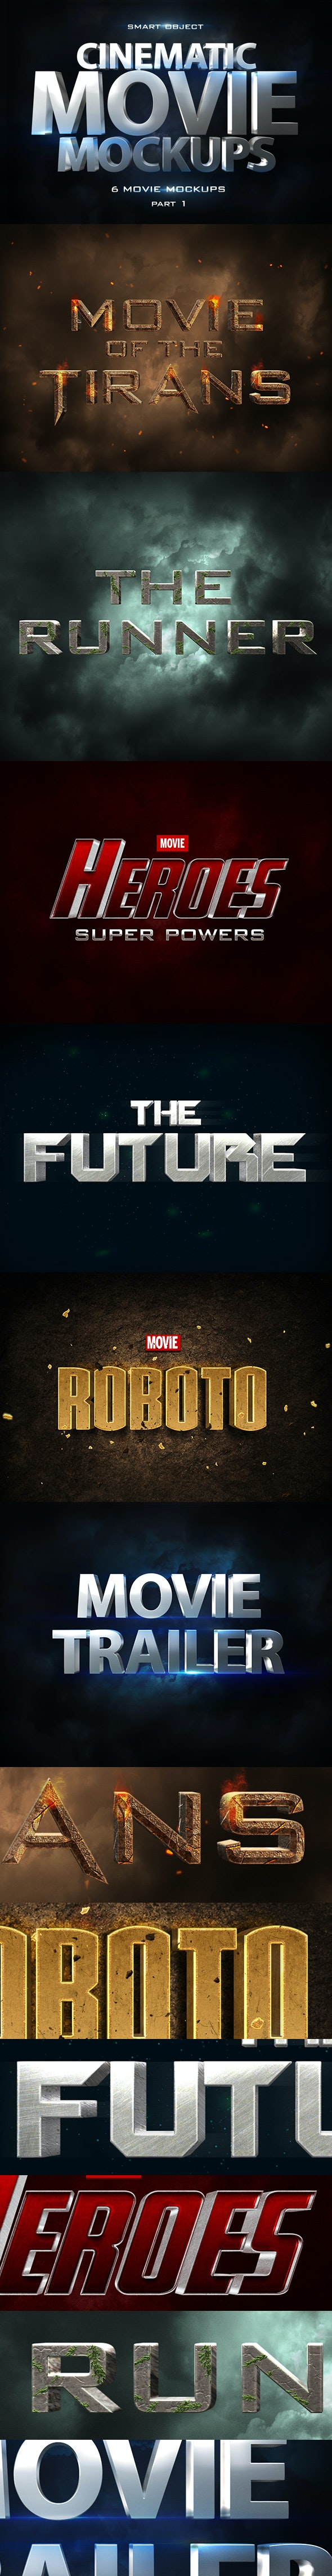 Cinematic 3D Movie Mockups - Text Effects Styles